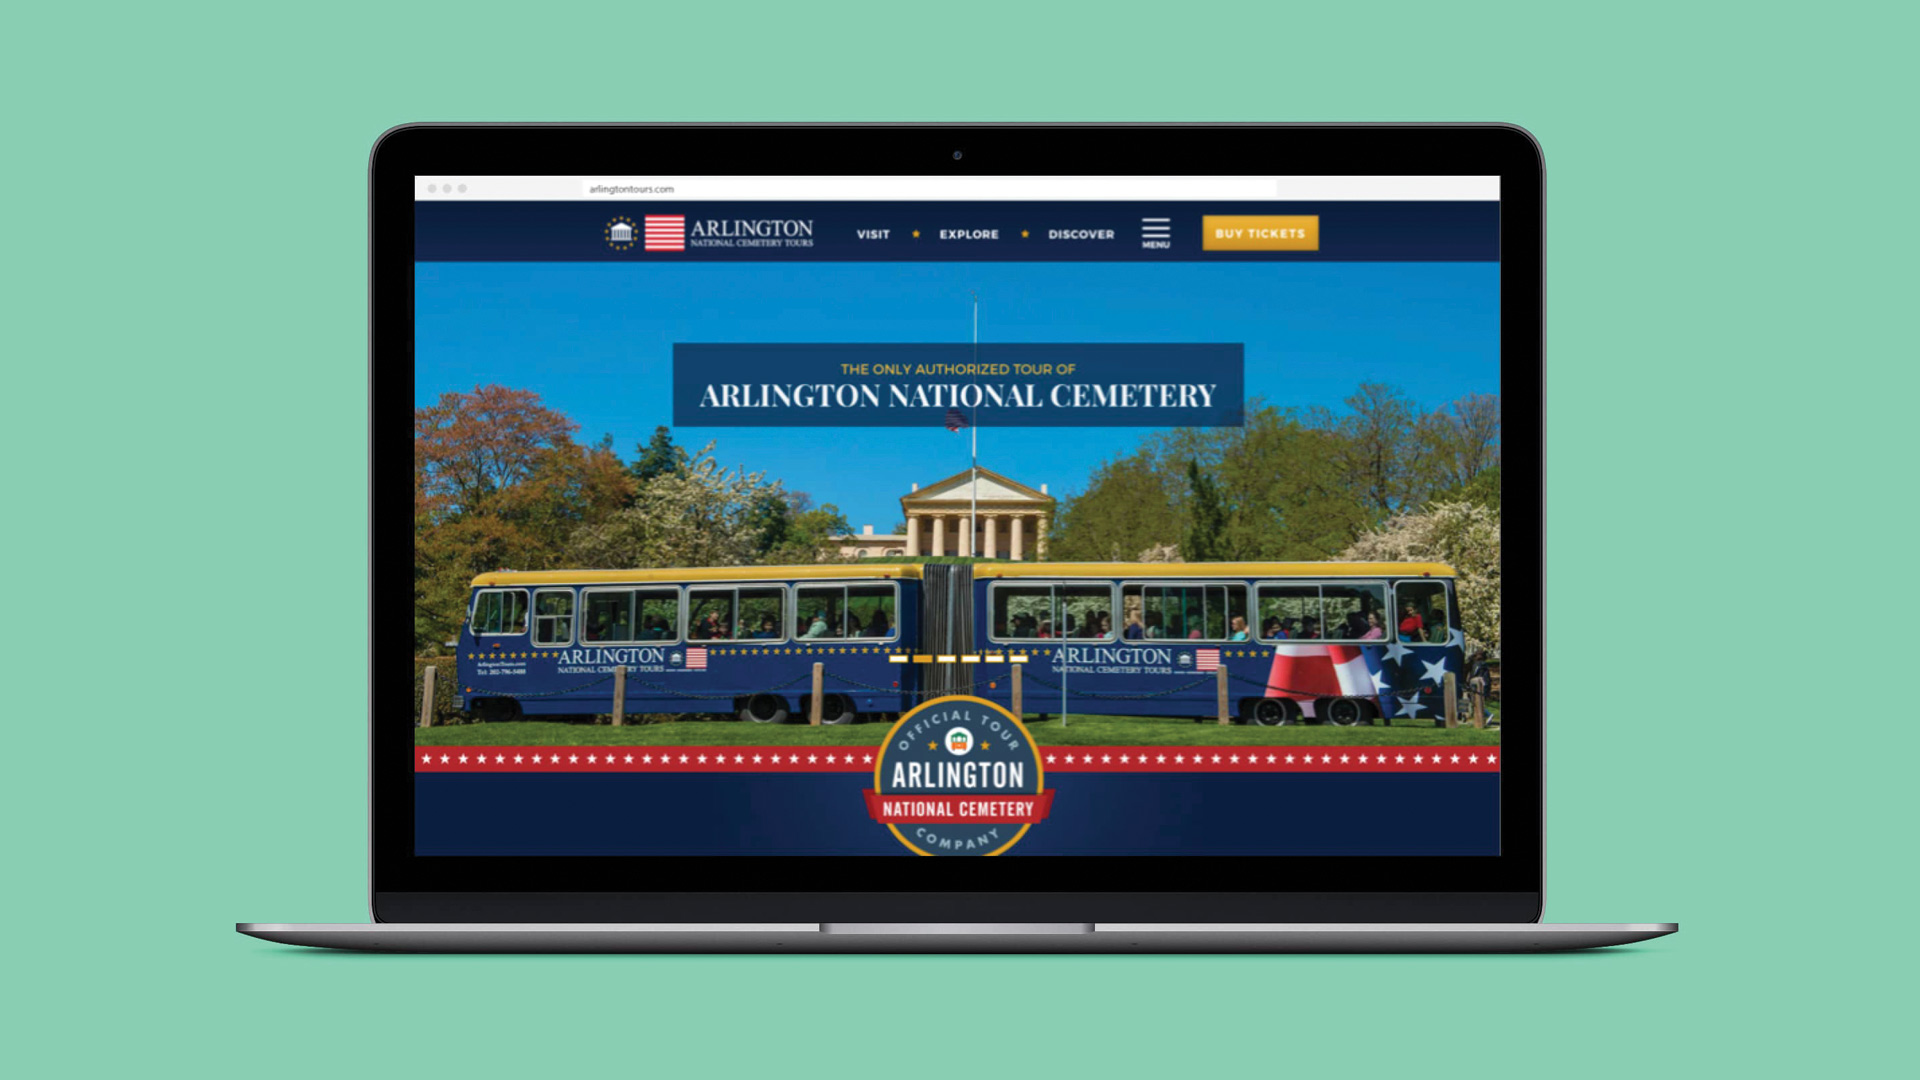 Arlington National Cemetery Tours website view from laptop